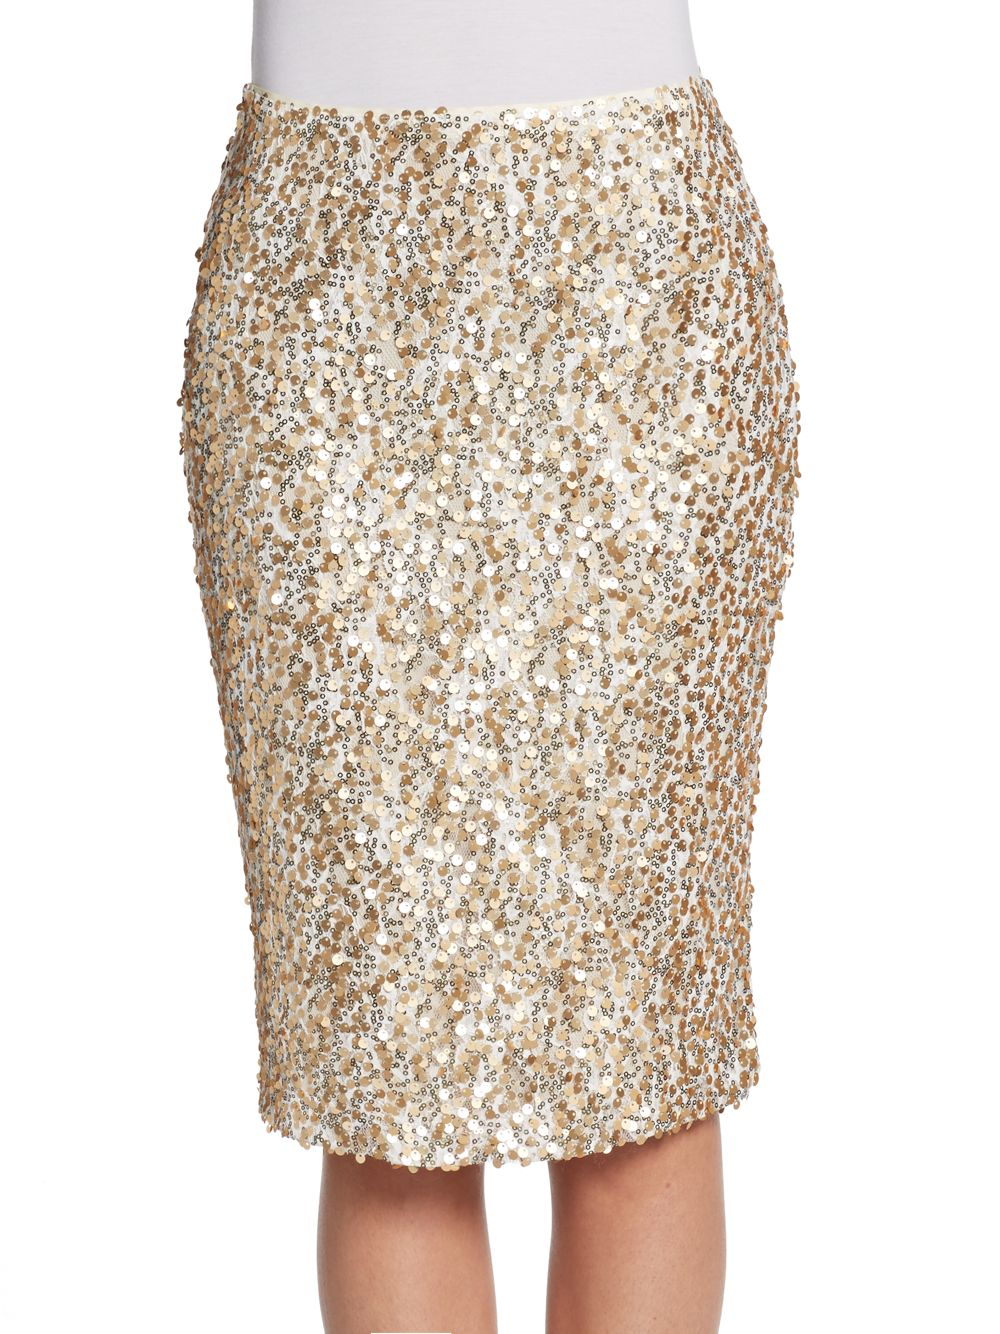 The Lulus Love Me Now Matte Rose Gold Sequin Mini Skirt is the perfect amount of sparkle! Shimmering, matte sequins shape this chic mini skirt, with a high waistline, and leg-baring length/5(34).